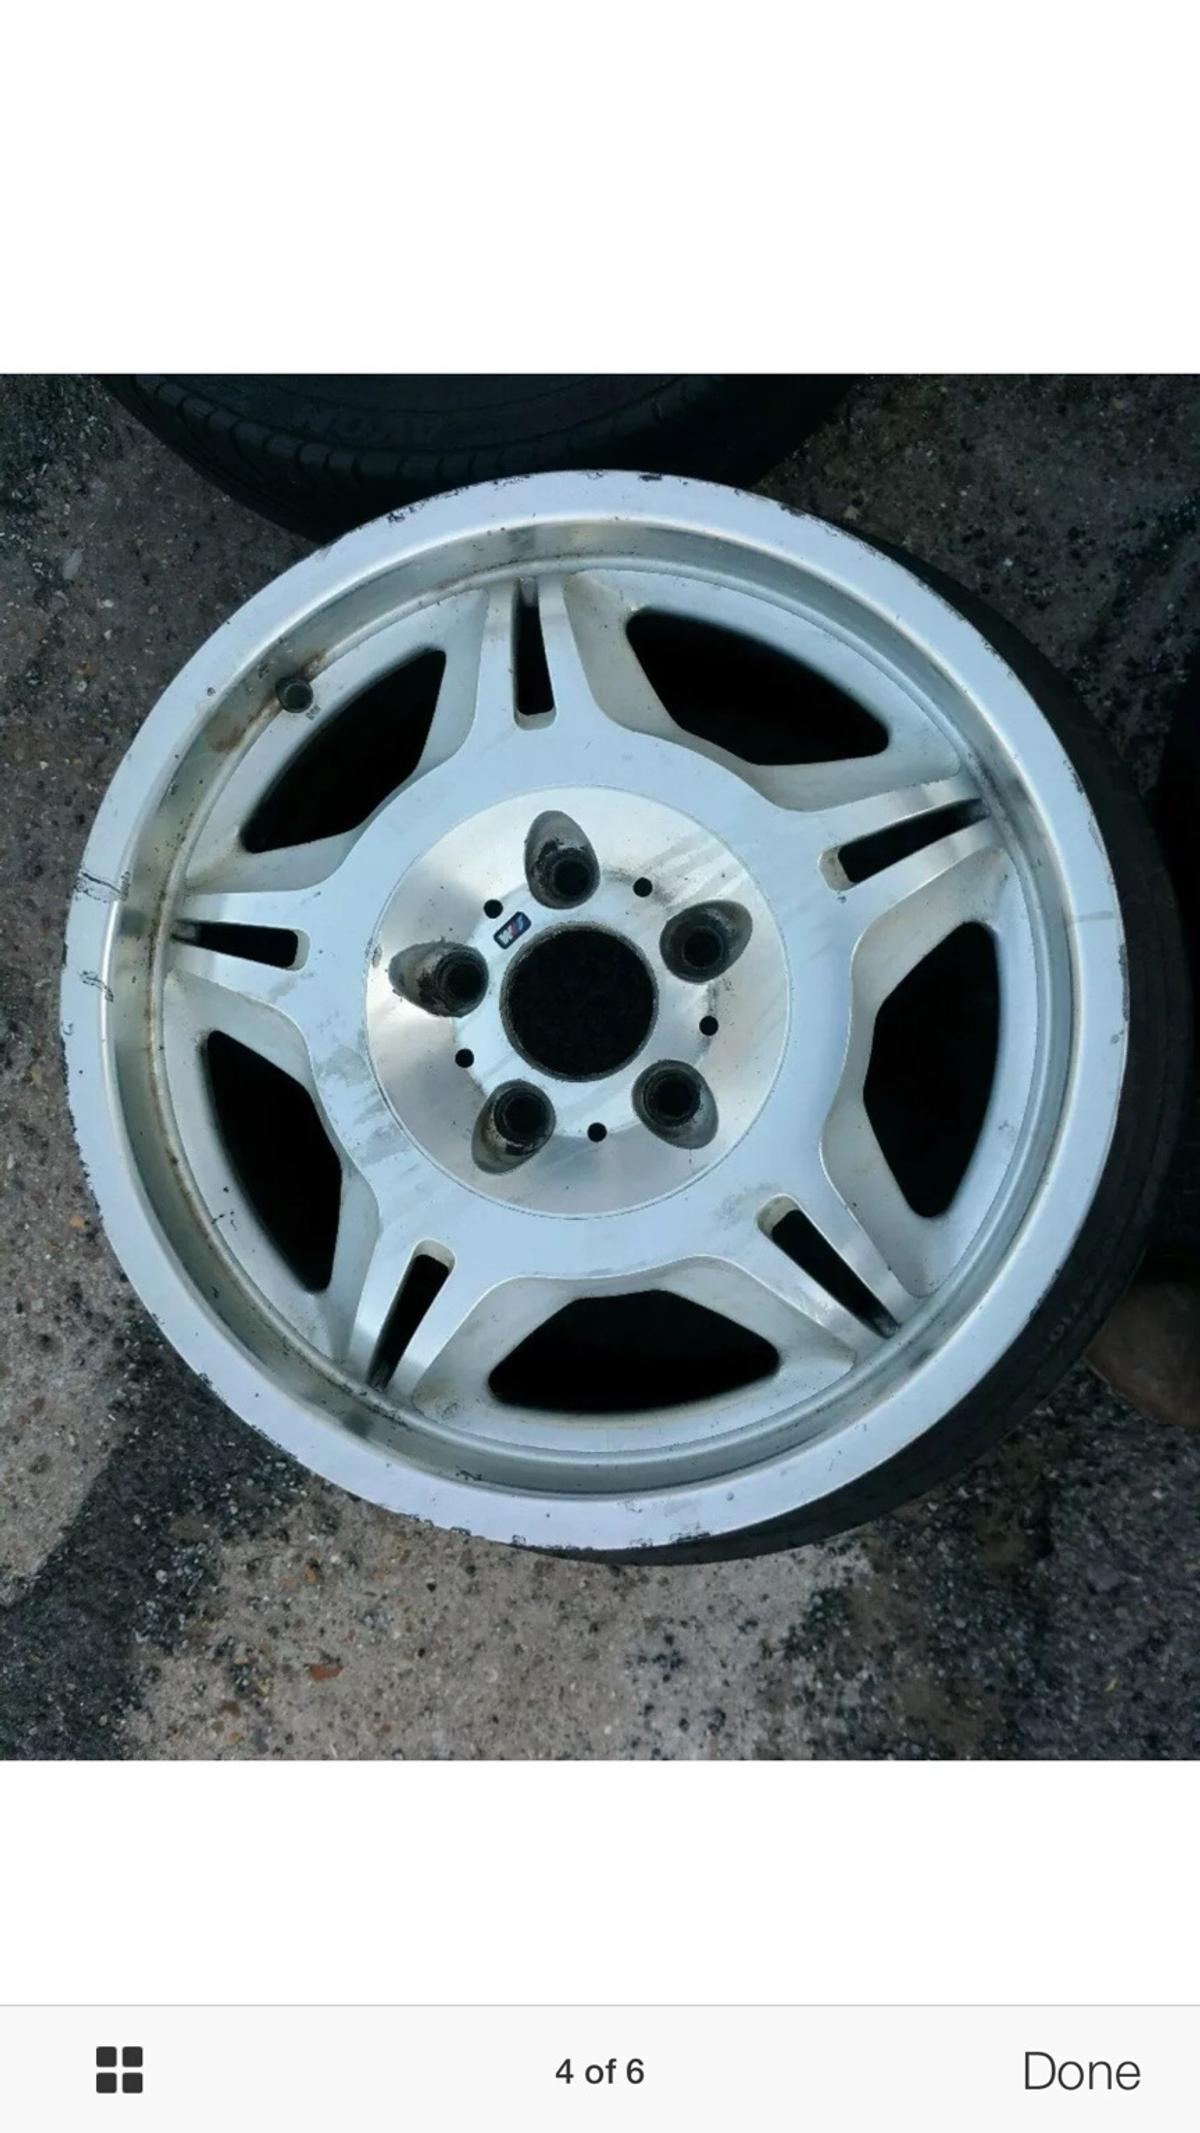 BMW E36 M3 Alloy Rims E46 E30 in N22 London for £190 00 for